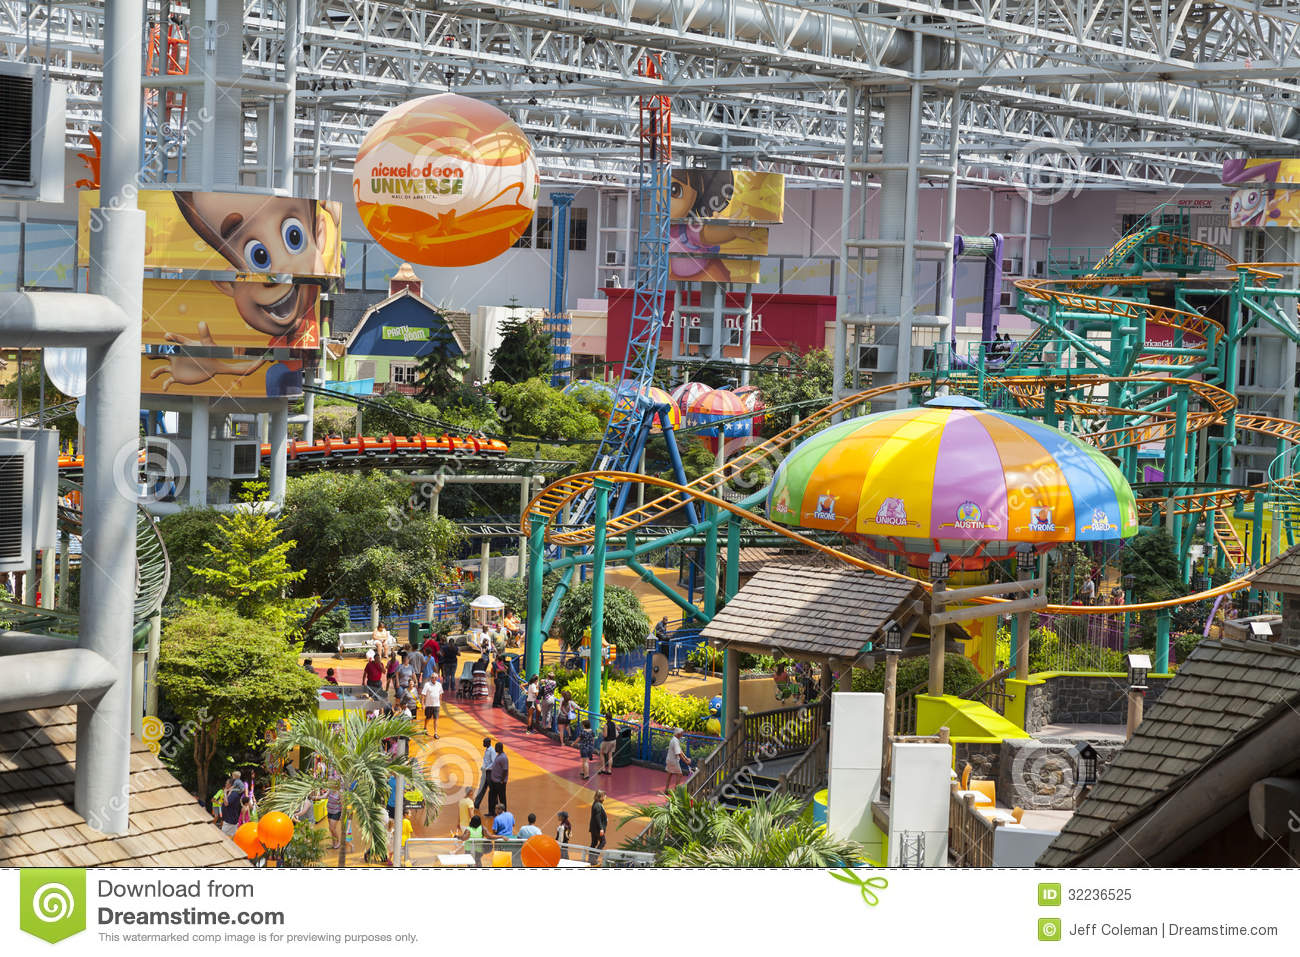 Bloomington (MN) United States  city photos : nickelodeon universe mall america bloomington mn o july july minnesota ...